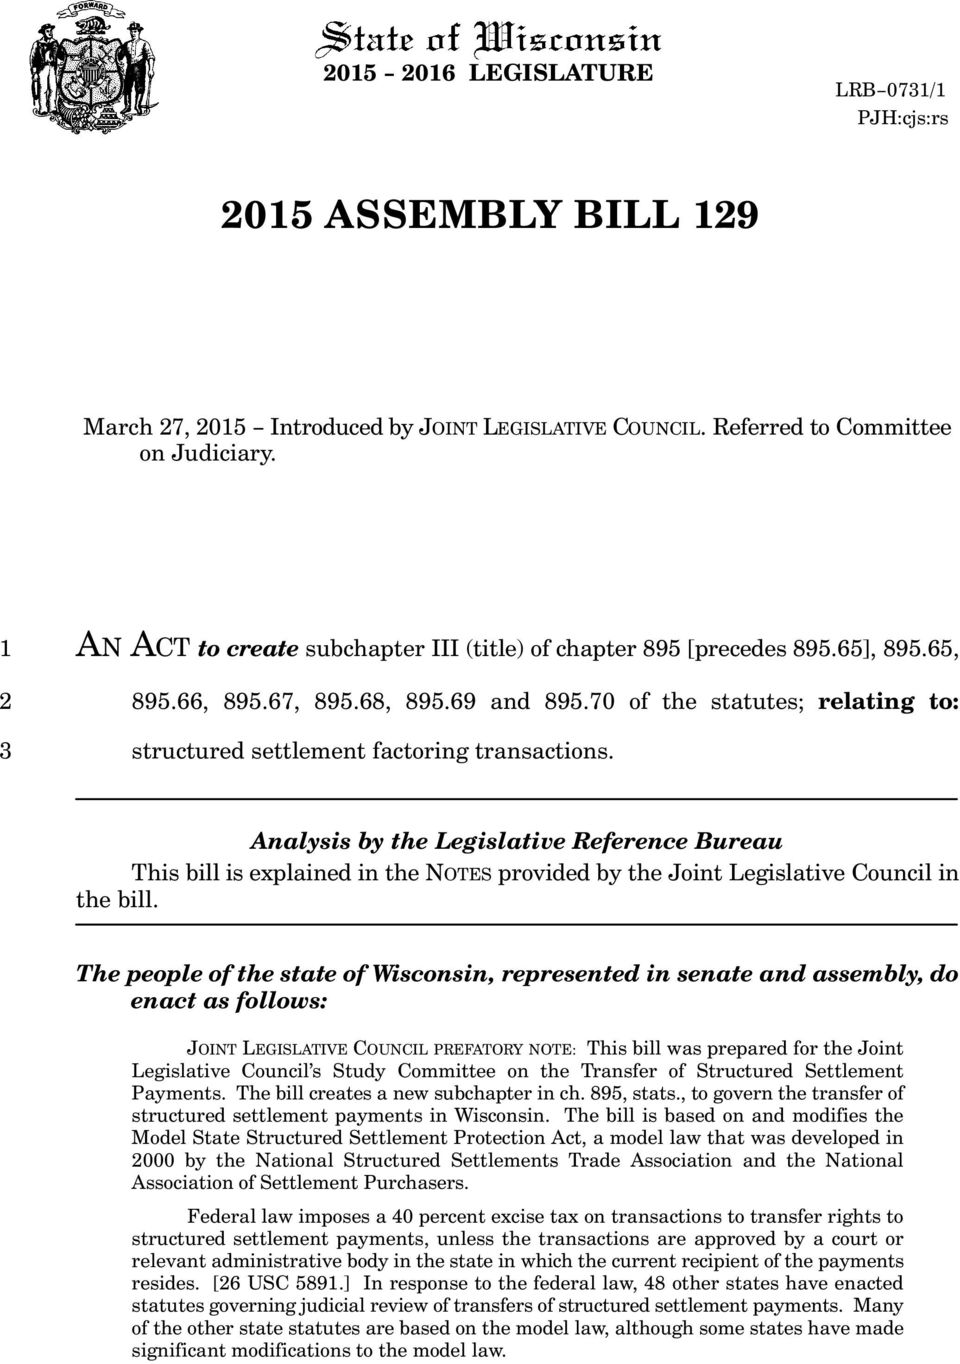 Analysis by the Legislative Reference Bureau This bill is explained in the NOTES provided by the Joint Legislative Council in the bill.